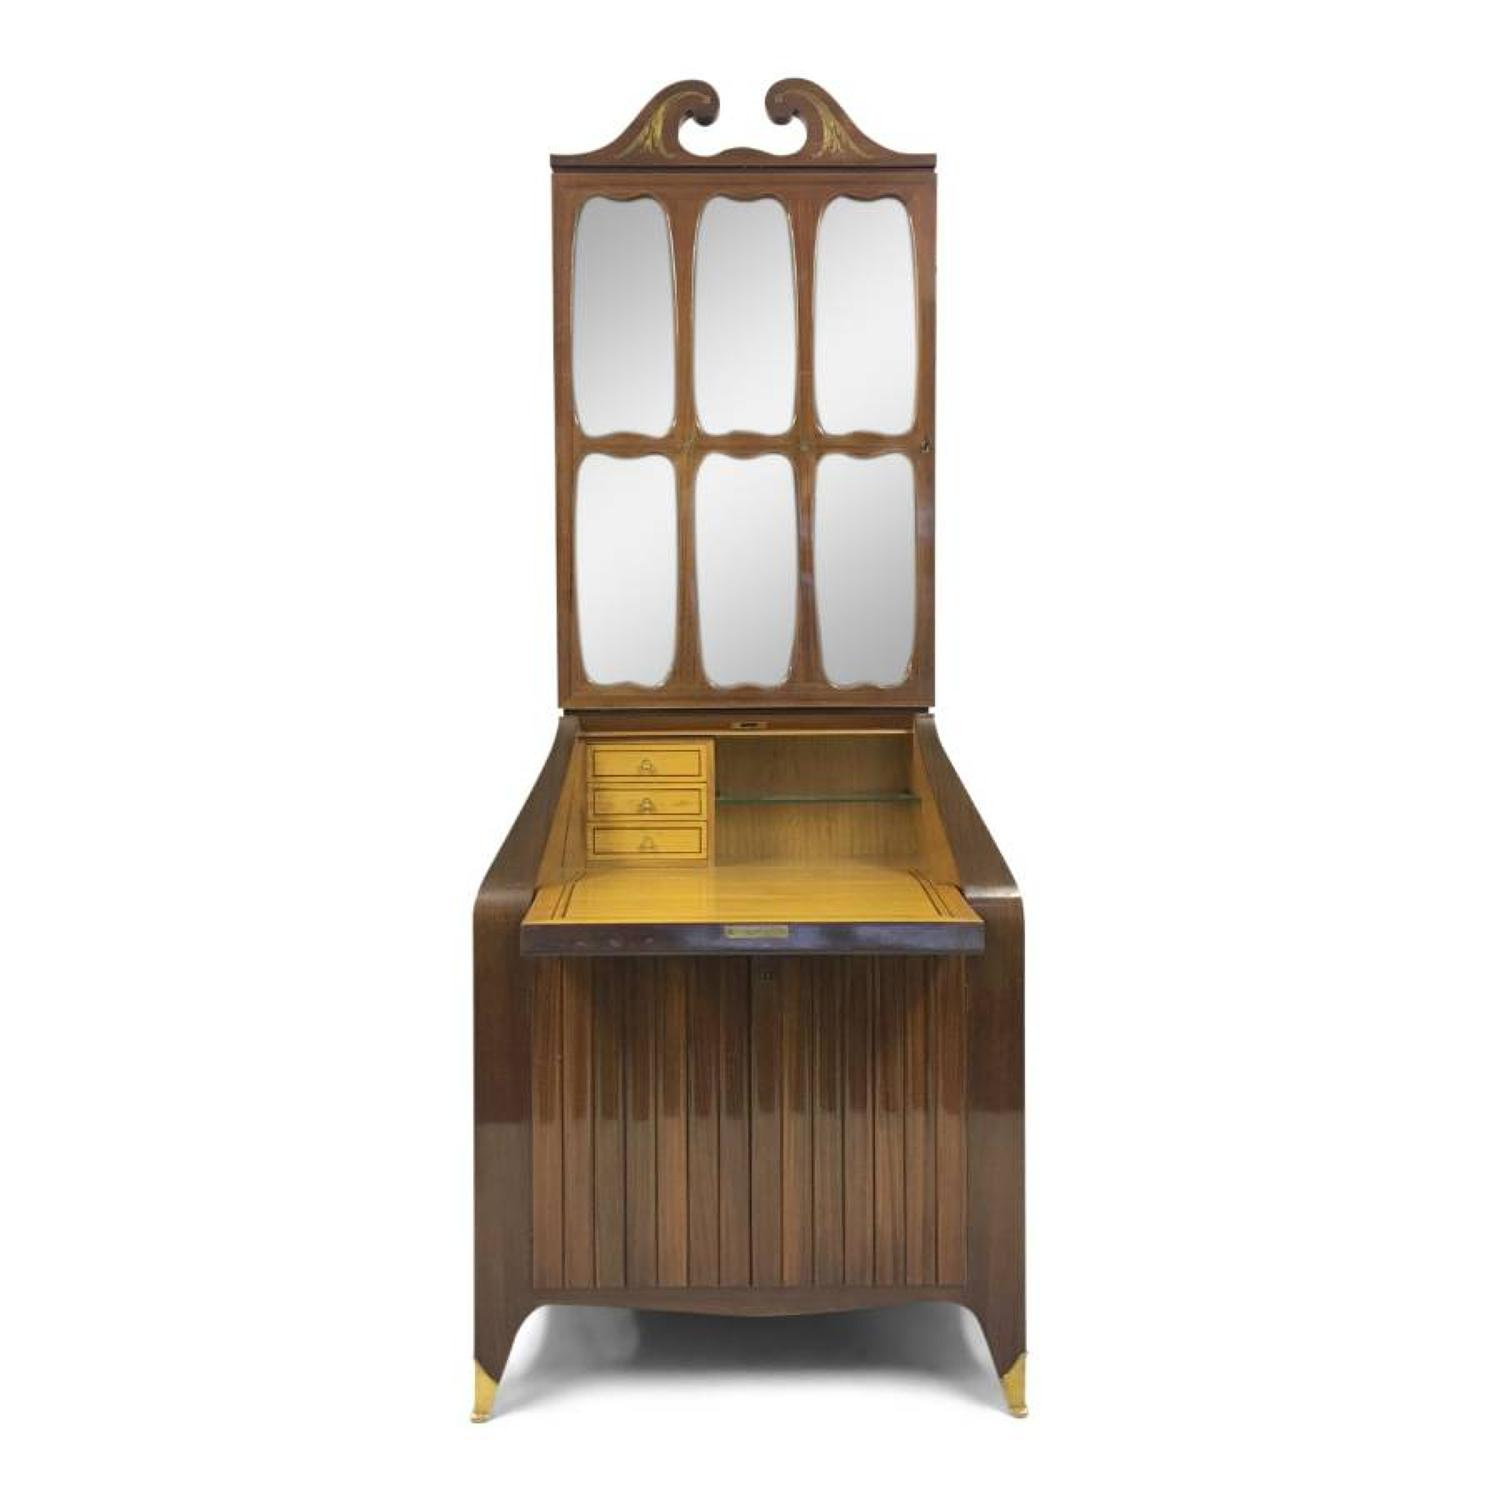 Rosewood bureau bookcase by Paolo Buffa